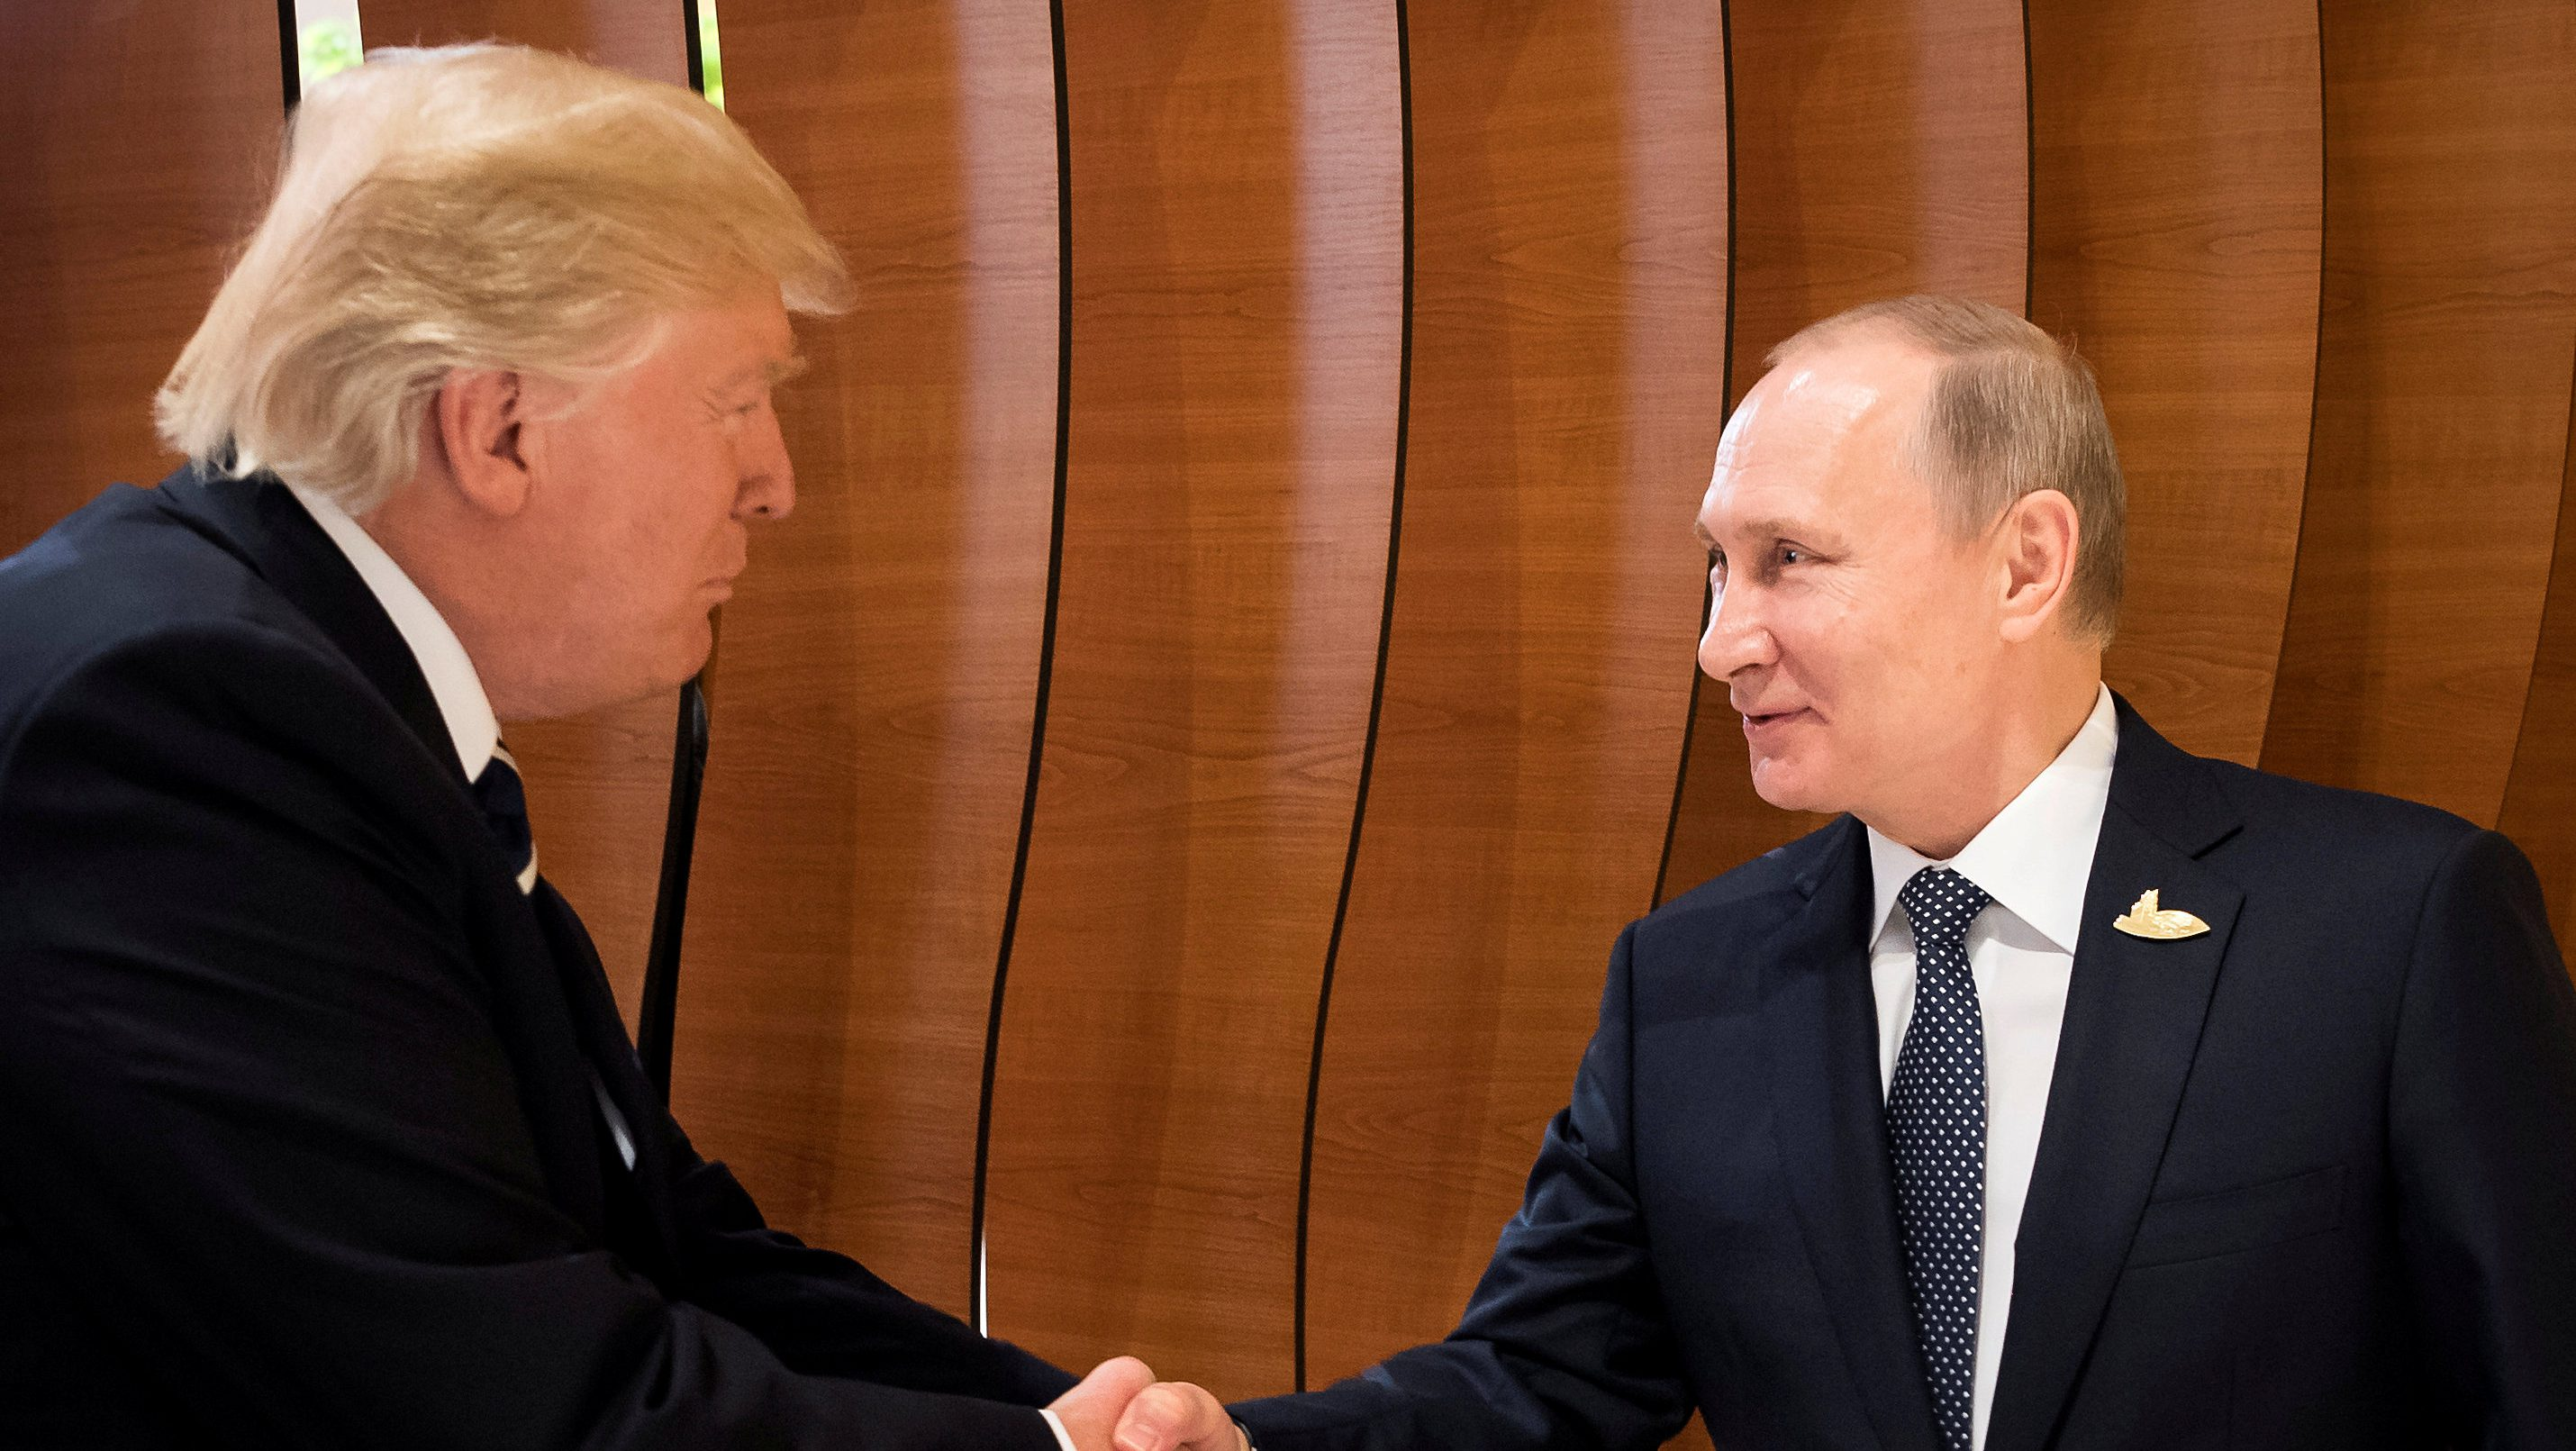 U.S. President Donald Trump and Russia's President Vladimir Putin shake hands during the G20 Summit in Hamburg, Germany in this still image taken from video, July 7, 2017. REUTERS/Steffen Kugler/Courtesy of Bundesregierung/Handout via REUTERS ATTENTION EDITORS - THIS PICTURE WAS PROVIDED BY A THIRD PARTY. NO RESALES. NO ARCHIVE      TPX IMAGES OF THE DAY - RTX3AHCA